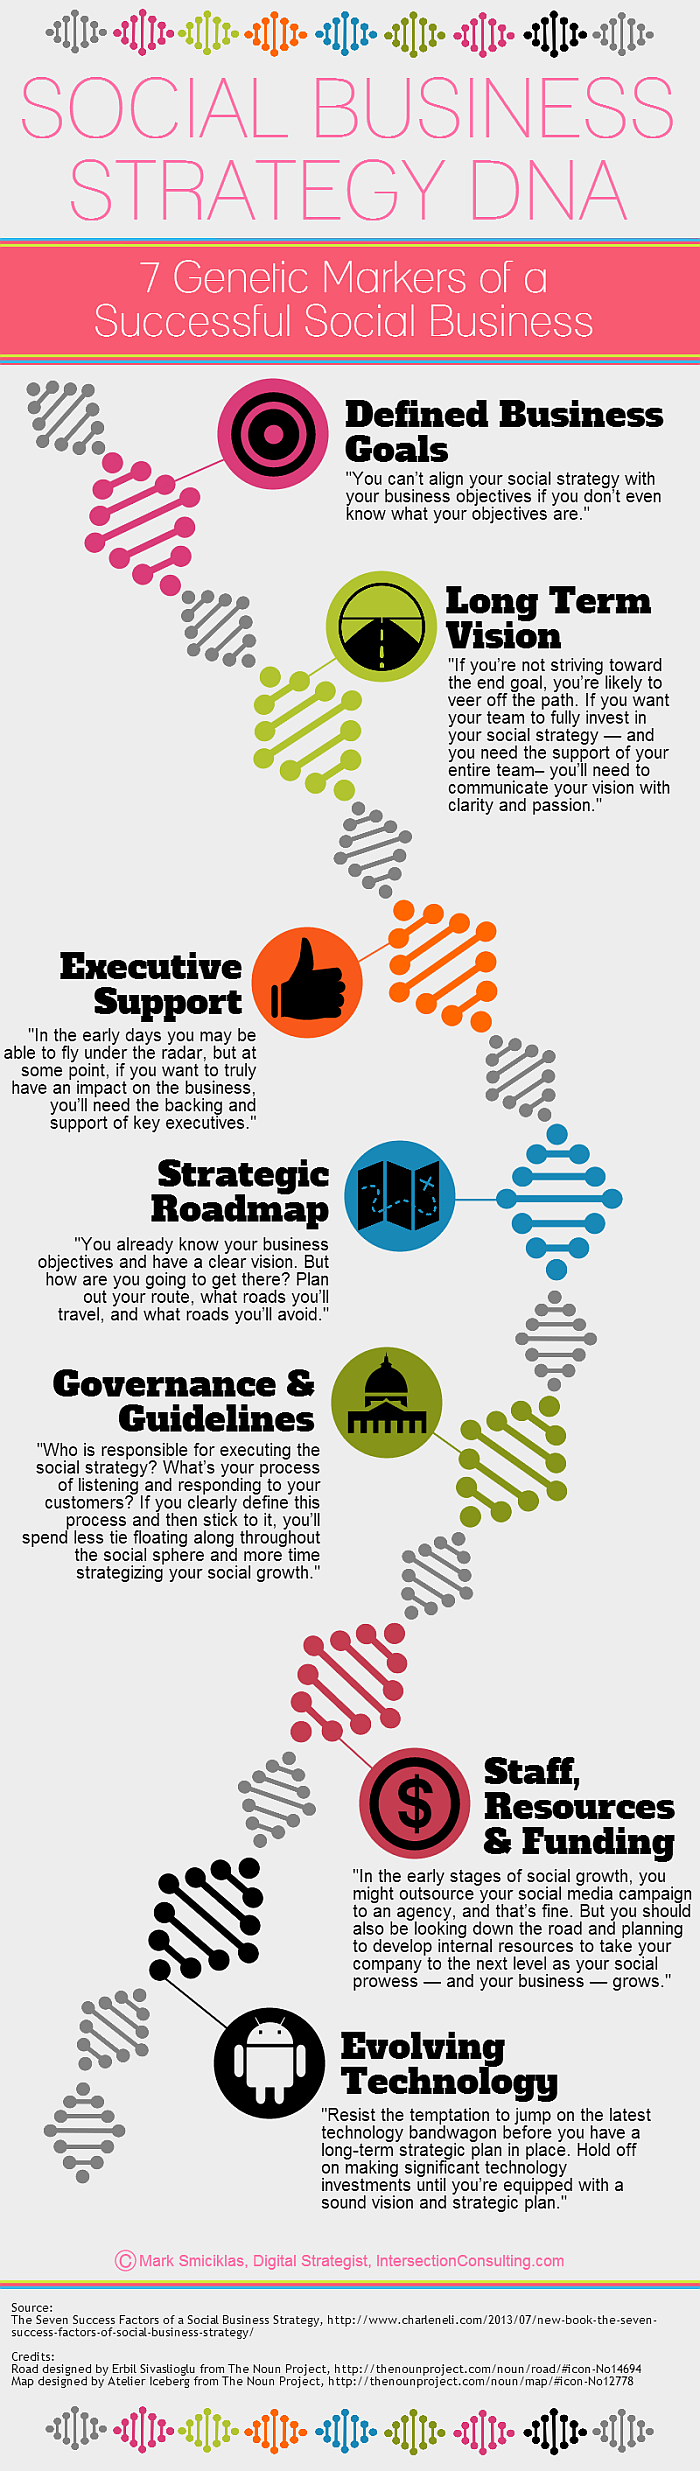 Social-Business-Strategy-DNA-700p